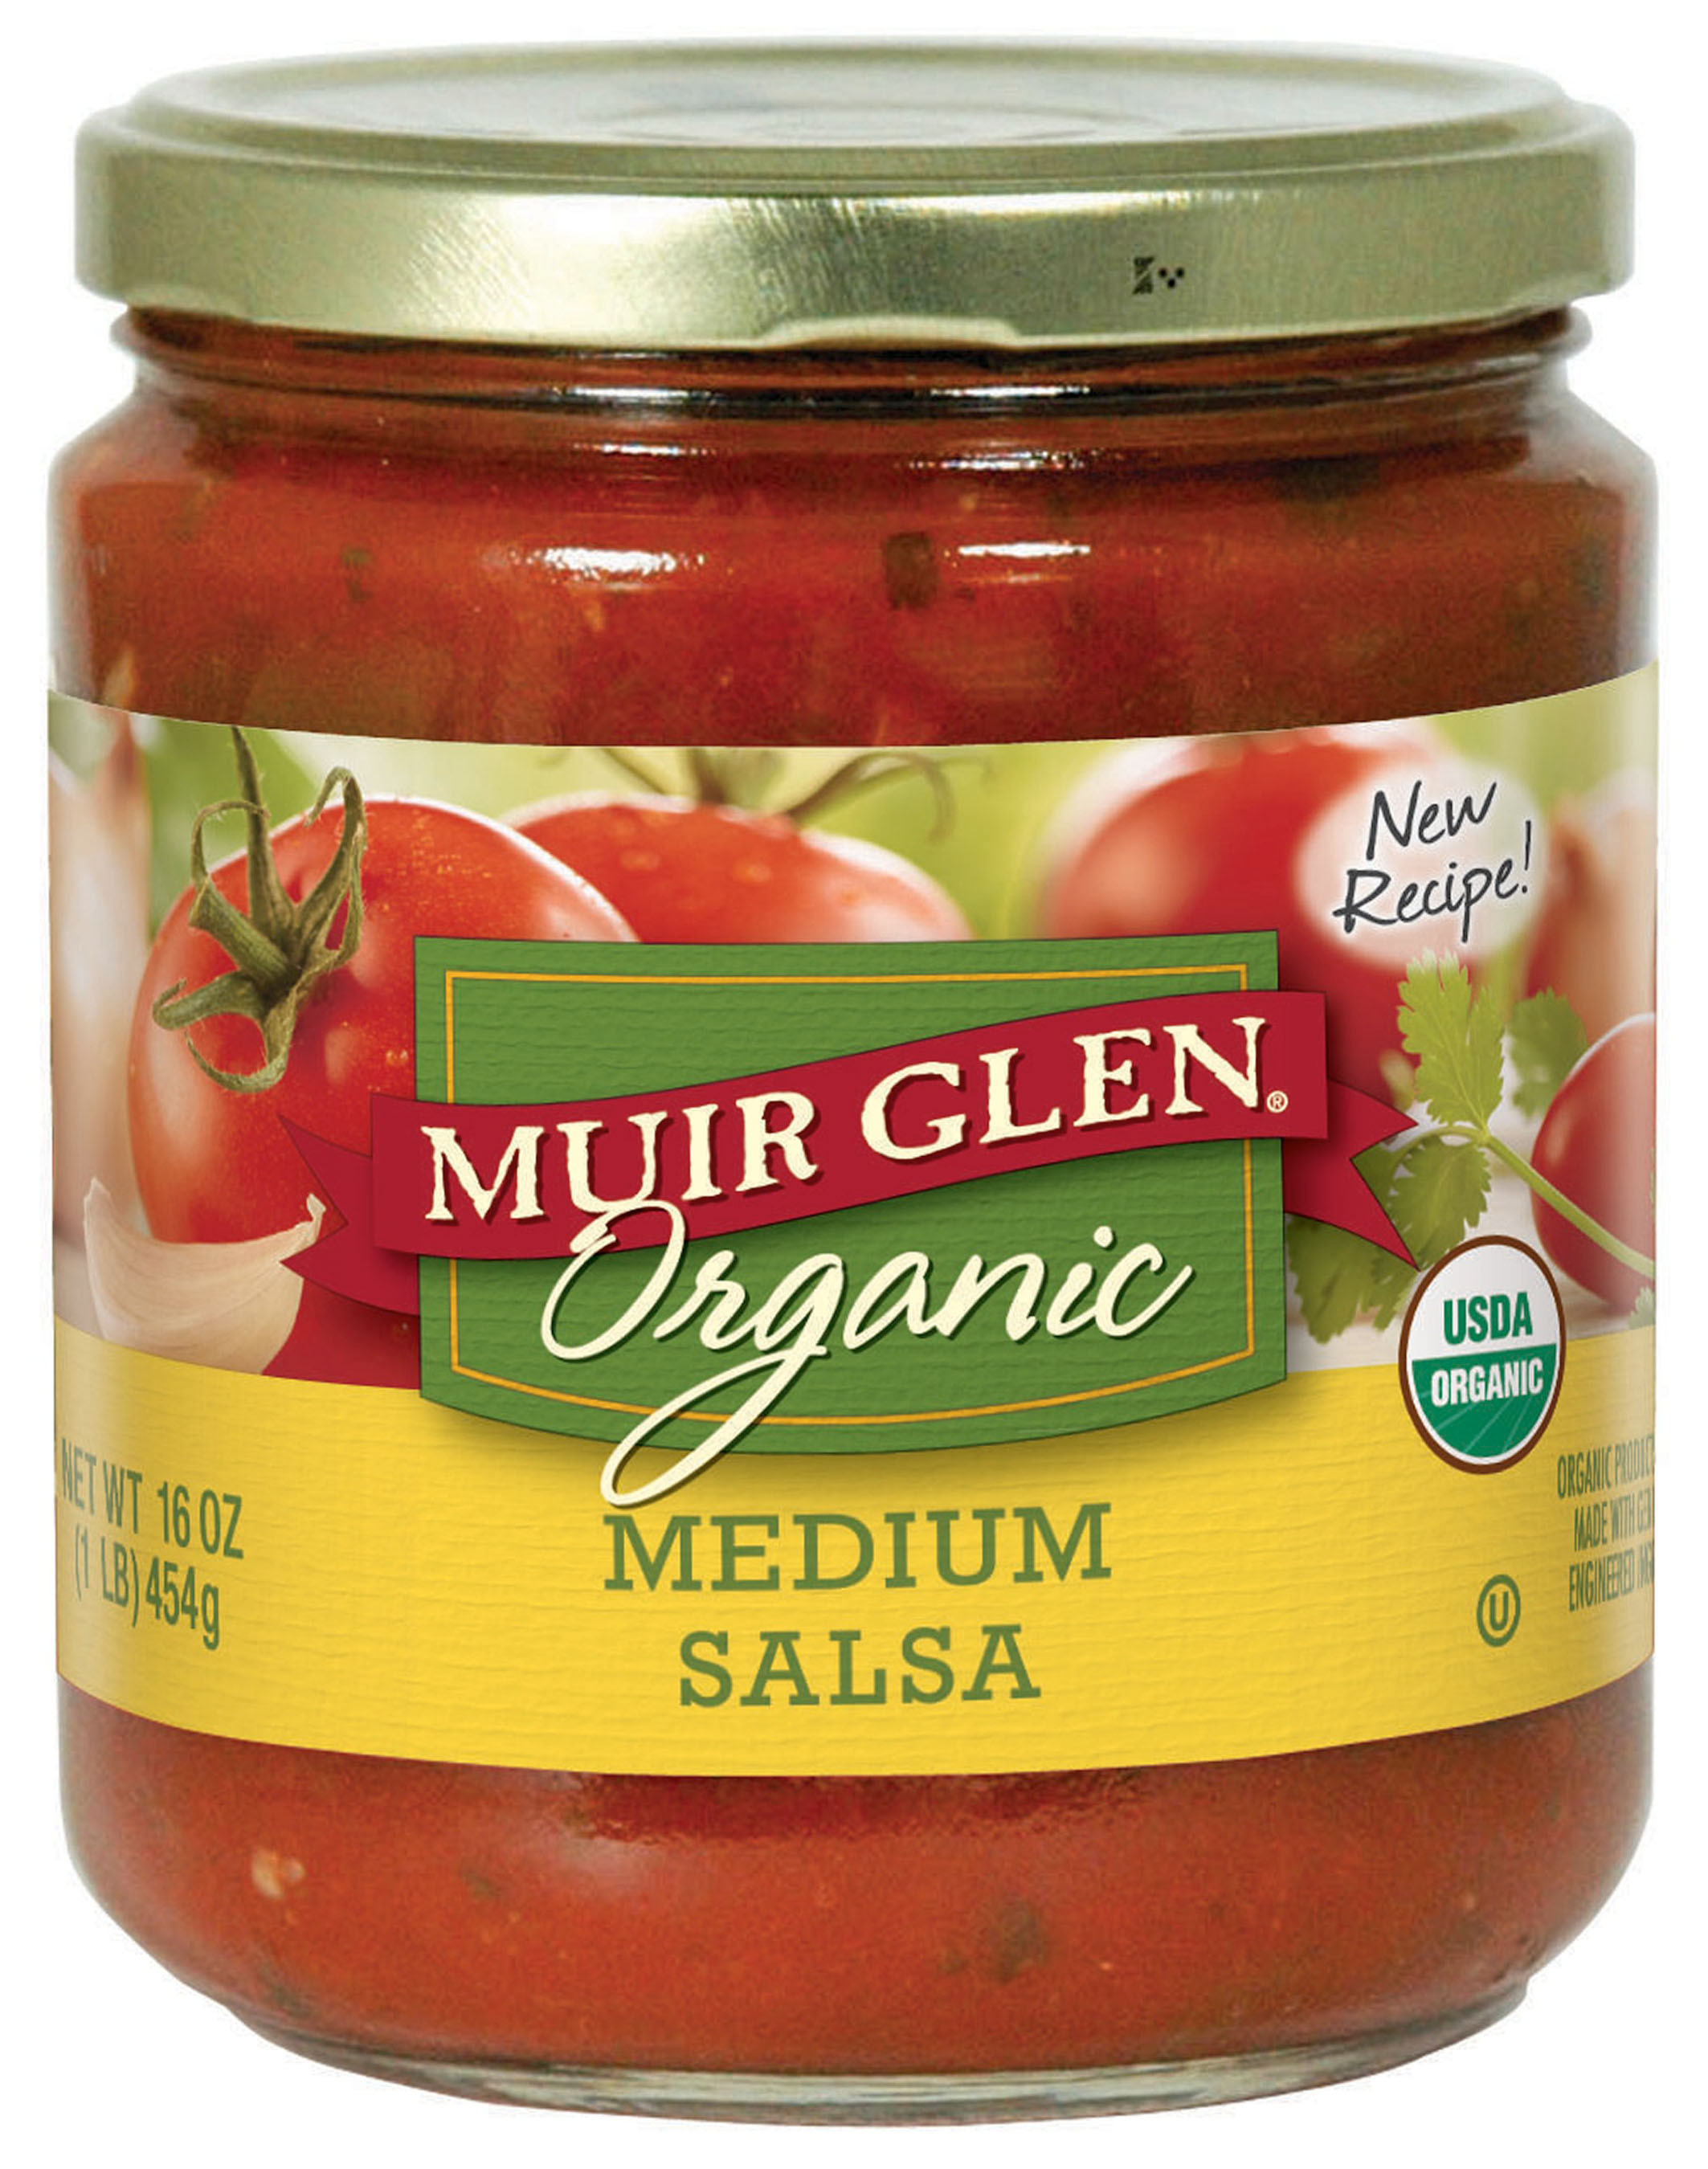 Muir Glen celebrated two new products and announced new product attributes today at Natural Products Expo West in Anaheim, Calif.  In January, Muir Glen introduced two delicious products to the brand's lineup of organic canned tomato varieties: new recipes for Mild and Medium Salsas and the 2013 Reserve Tomato harvest. Like all Muir Glen products, these additions are made using vine-ripened organic tomatoes picked once a year in California at peak flavor and canned within hours. The company also celebrated its commitment to transitioning all its canned tomato products to a liner made without BPA.  (PRNewsFoto/Muir Glen)